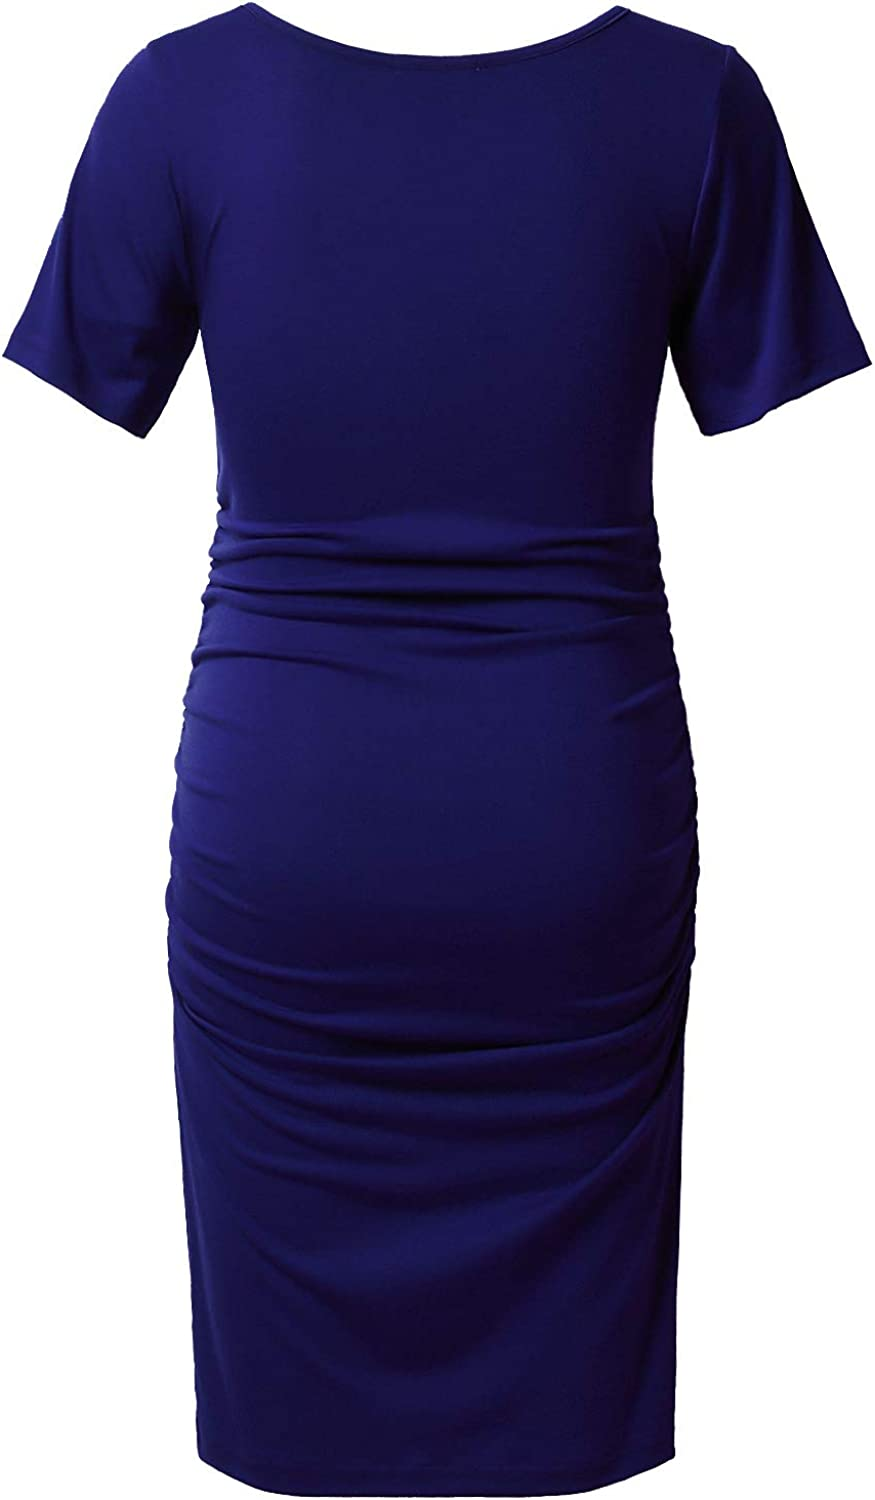 GINKANA Maternity Bodycon Dress Short Sleeve Ruched Sides Casual Pregnancy Clothes